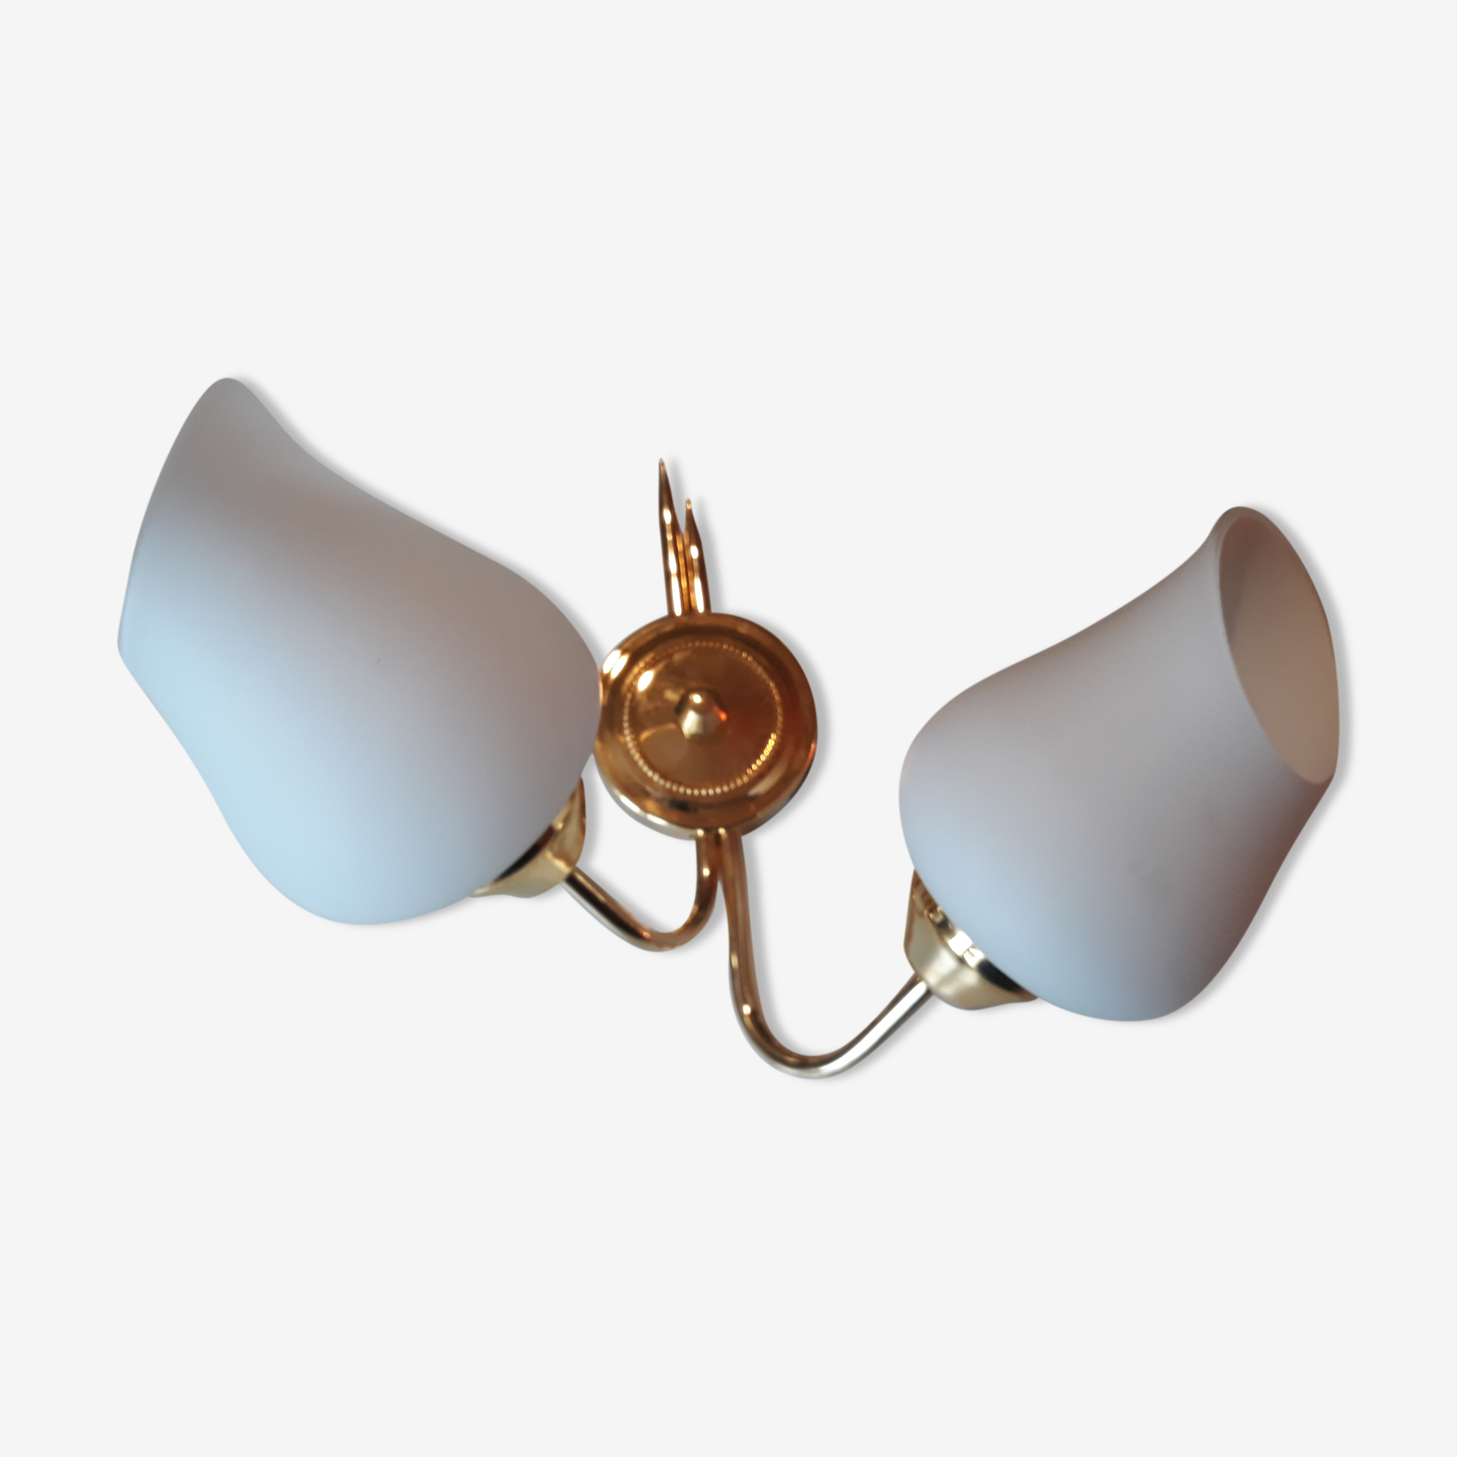 Double wall light gold metal and opaline 60s